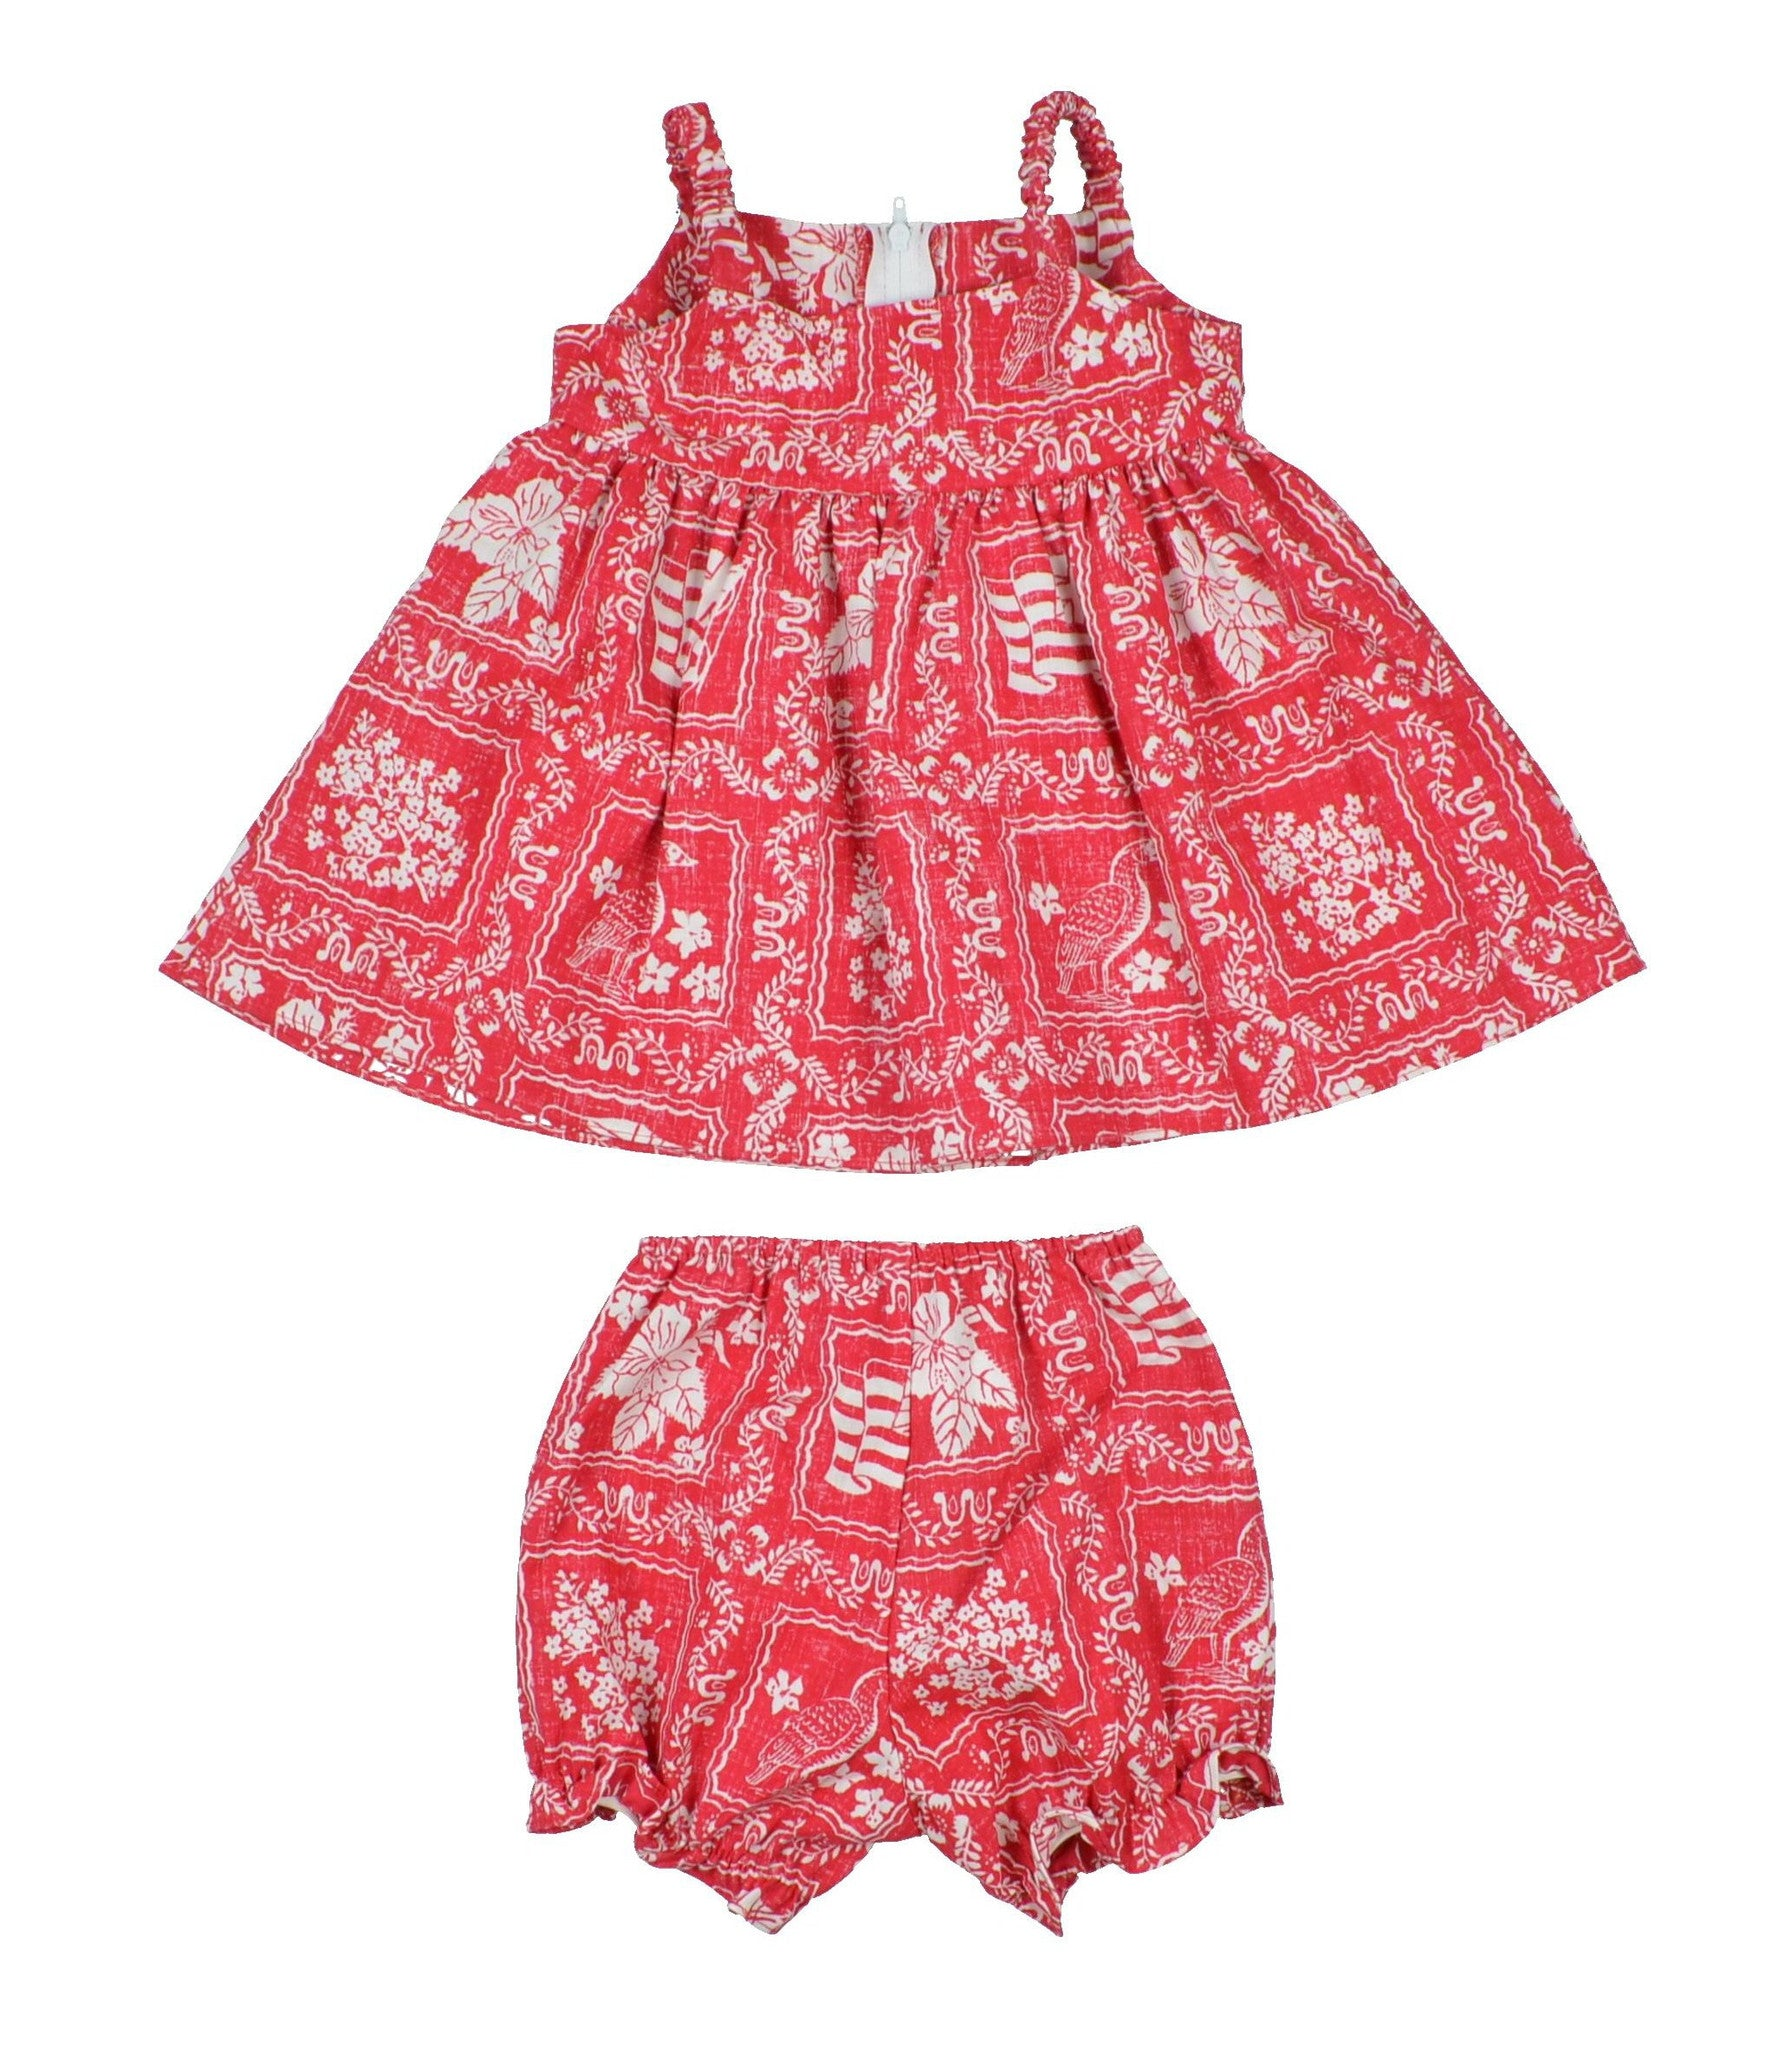 LAHAINA SAILOR / TODDLER DRESS WITH BLOOMERS • 6M-18M - Zoomed